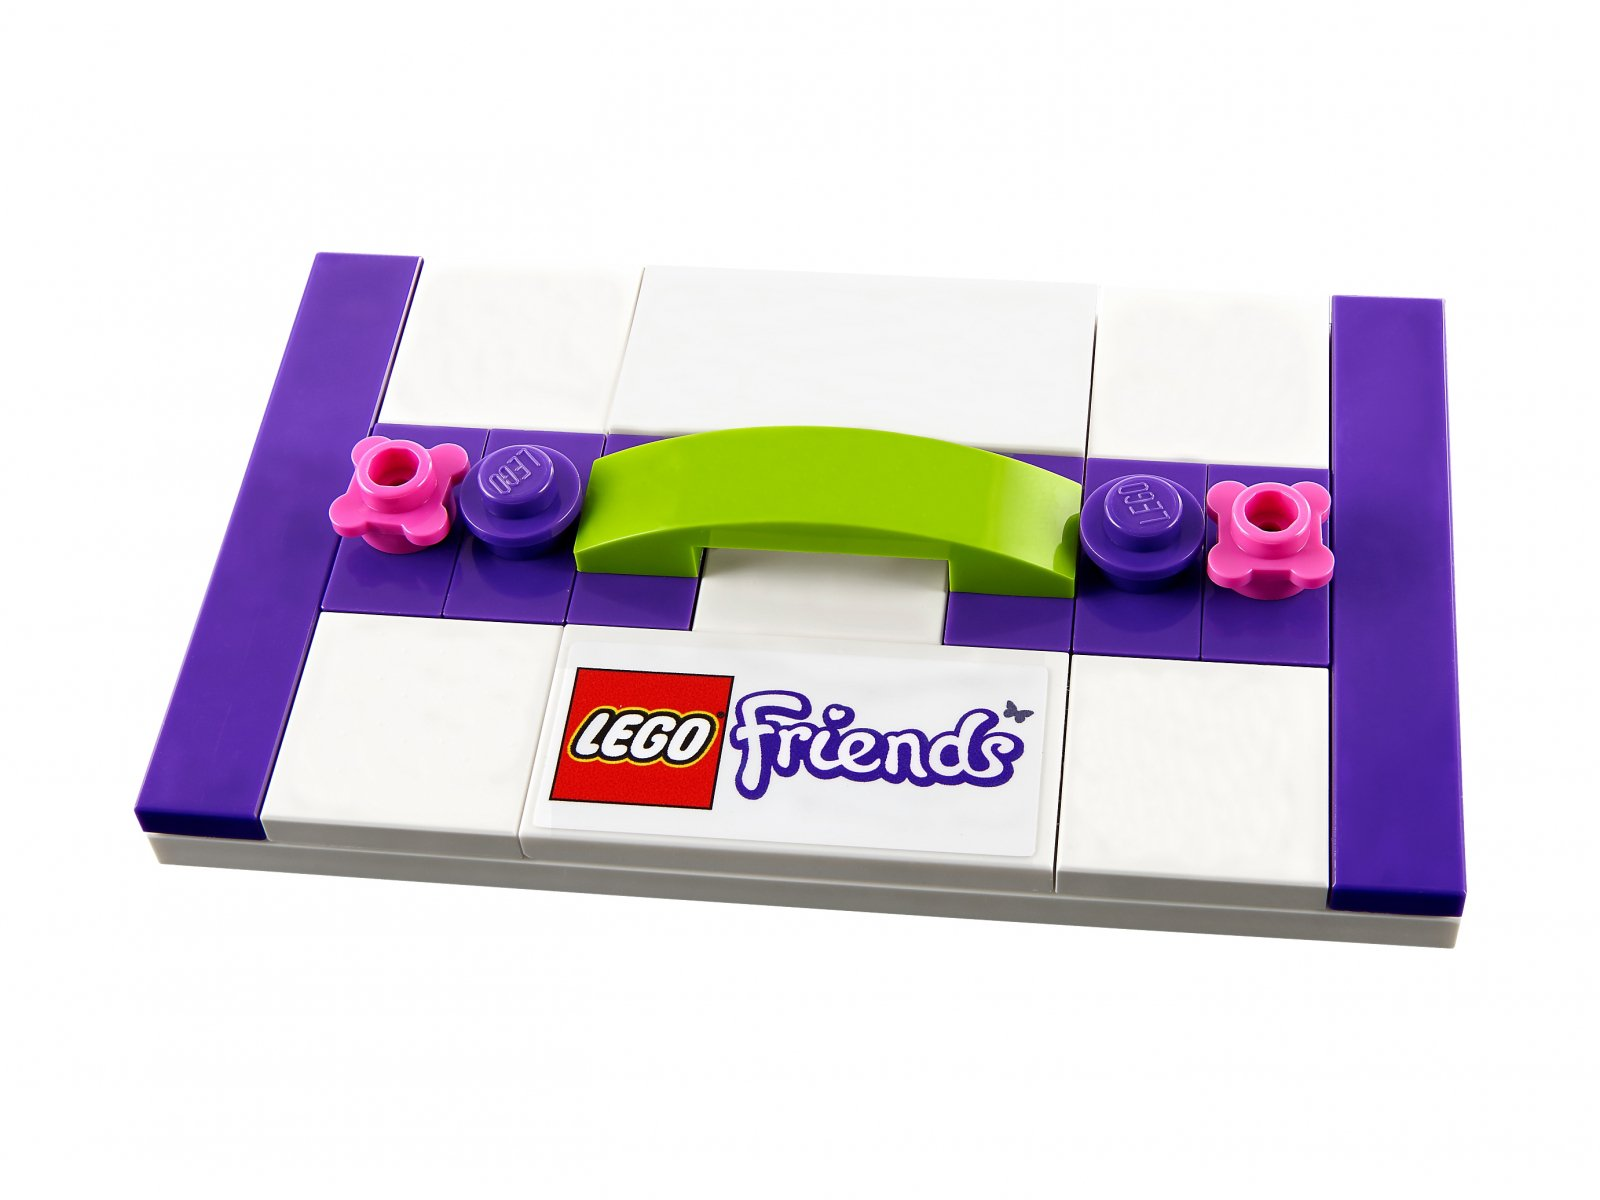 LEGO 40266 Friends Storage Box